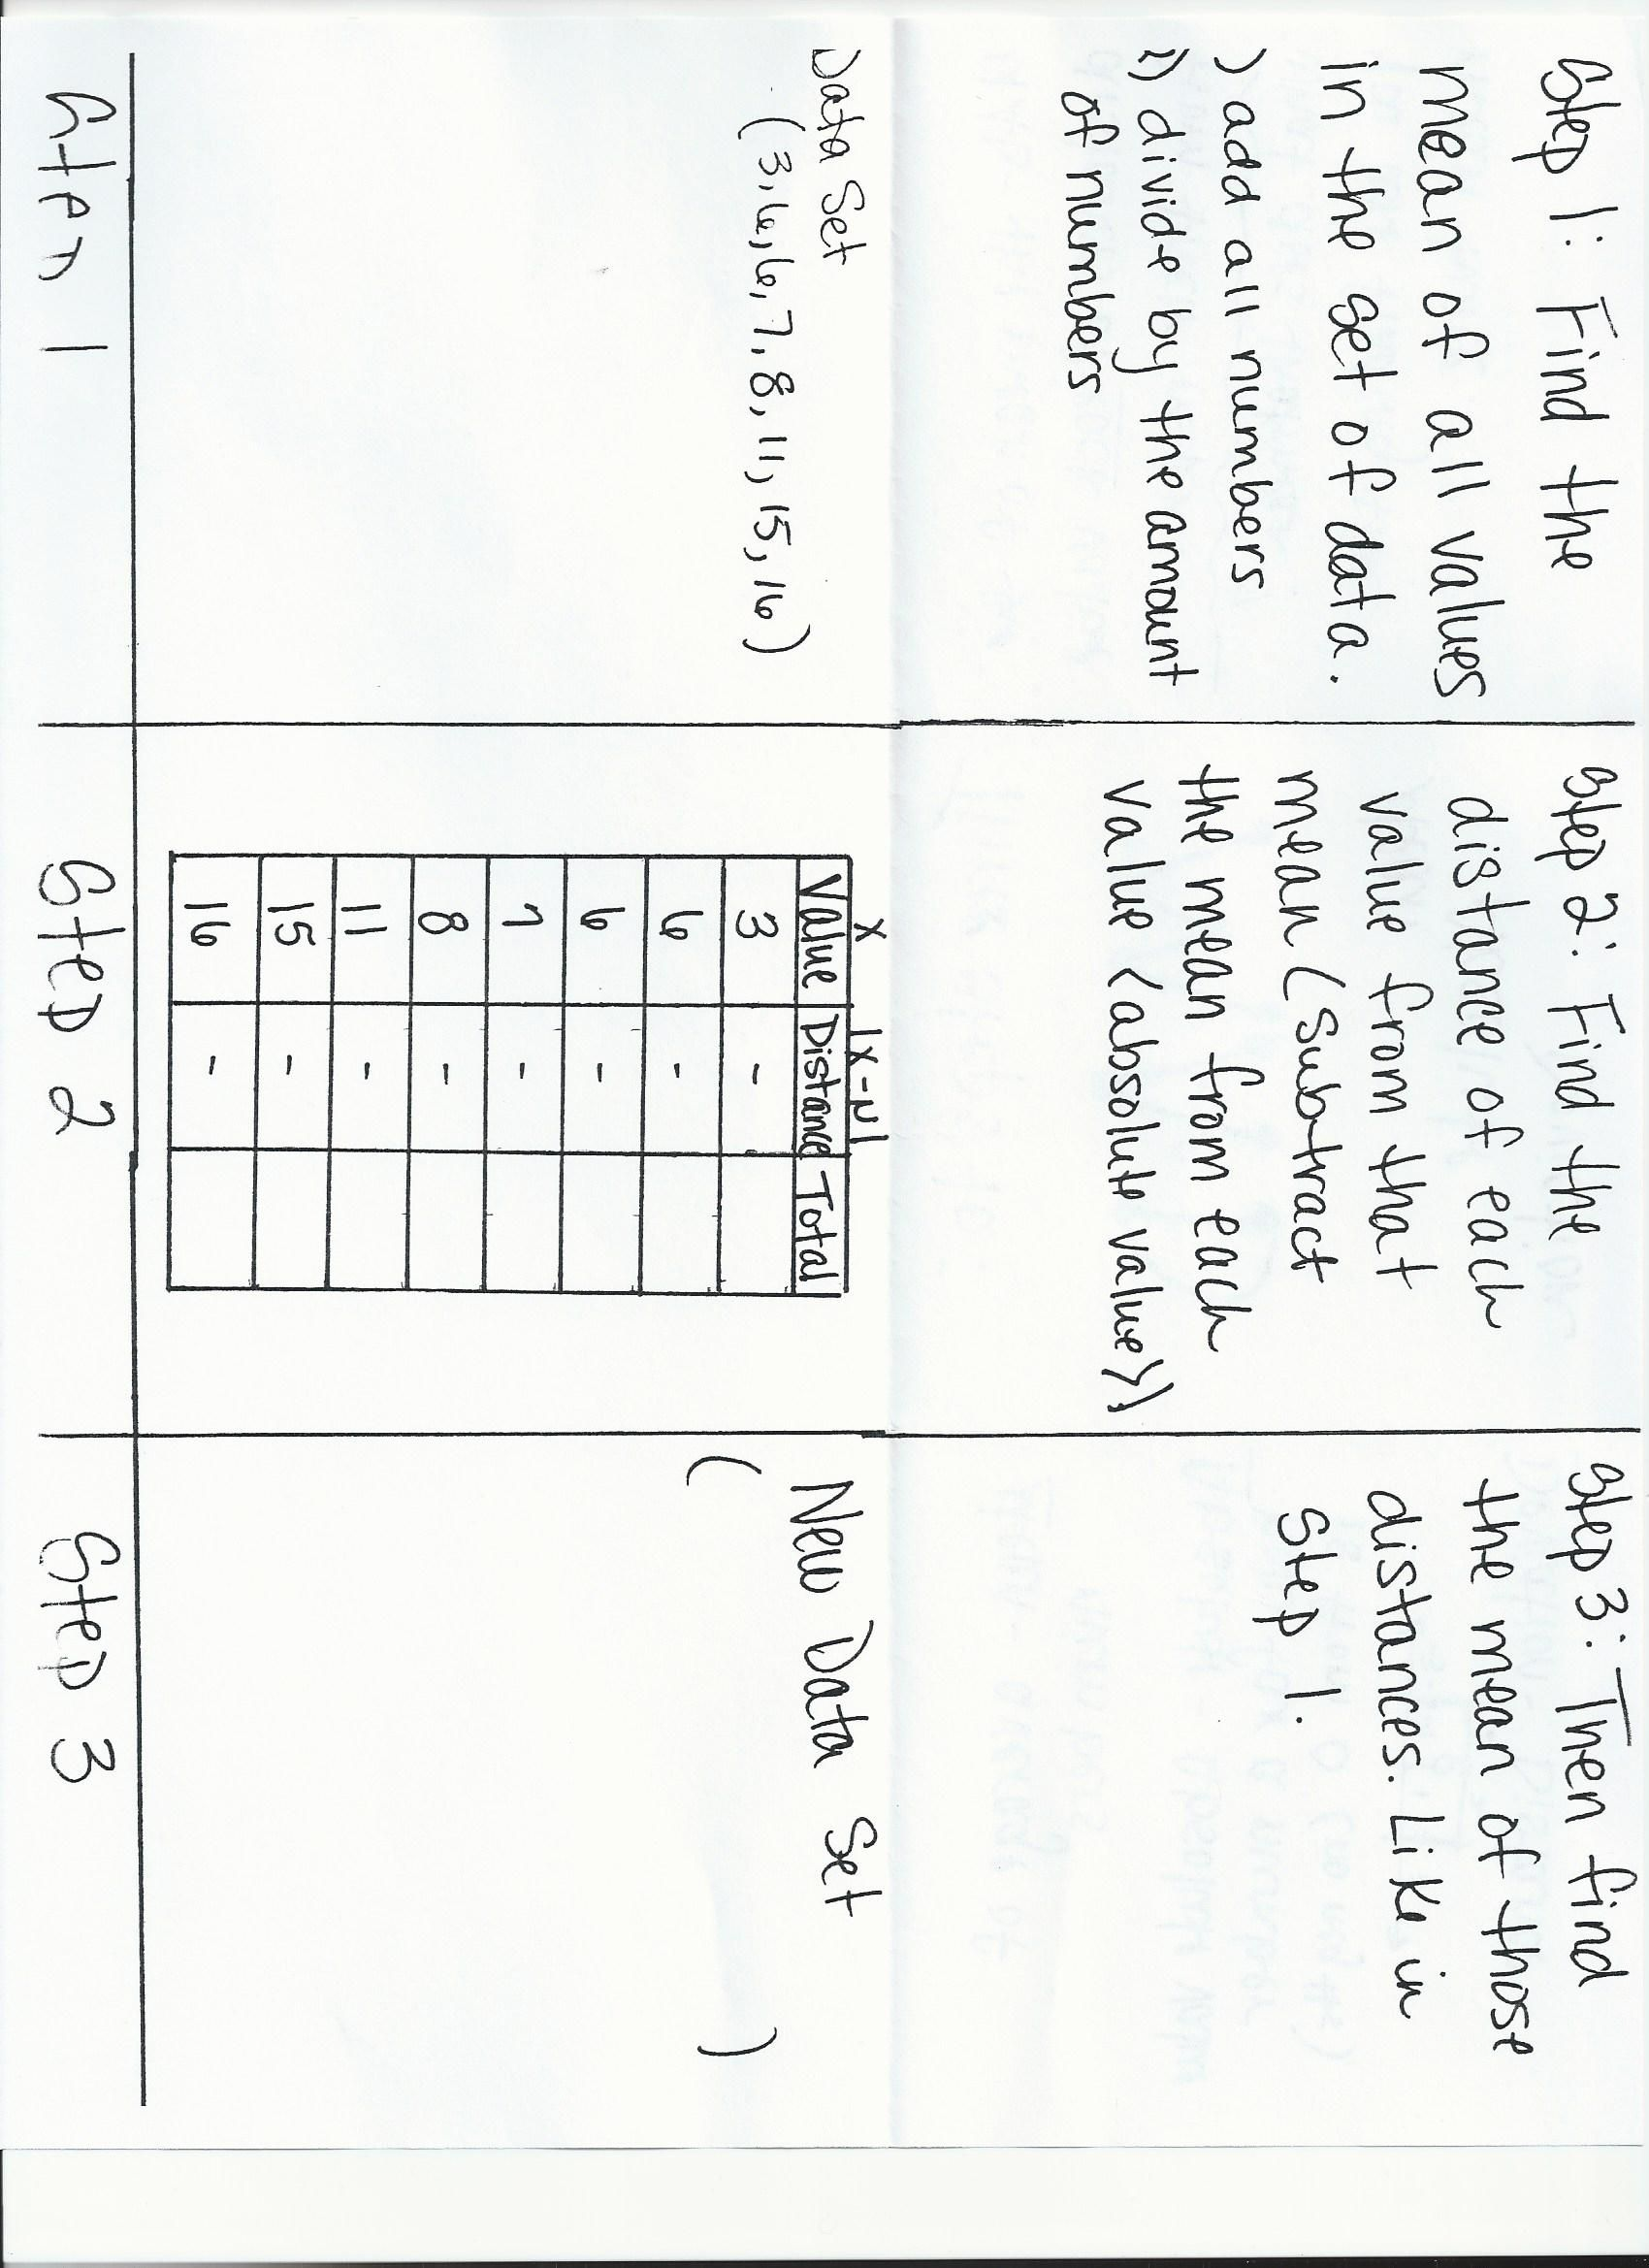 6th Grade Mean Absolute Deviation Worksheet